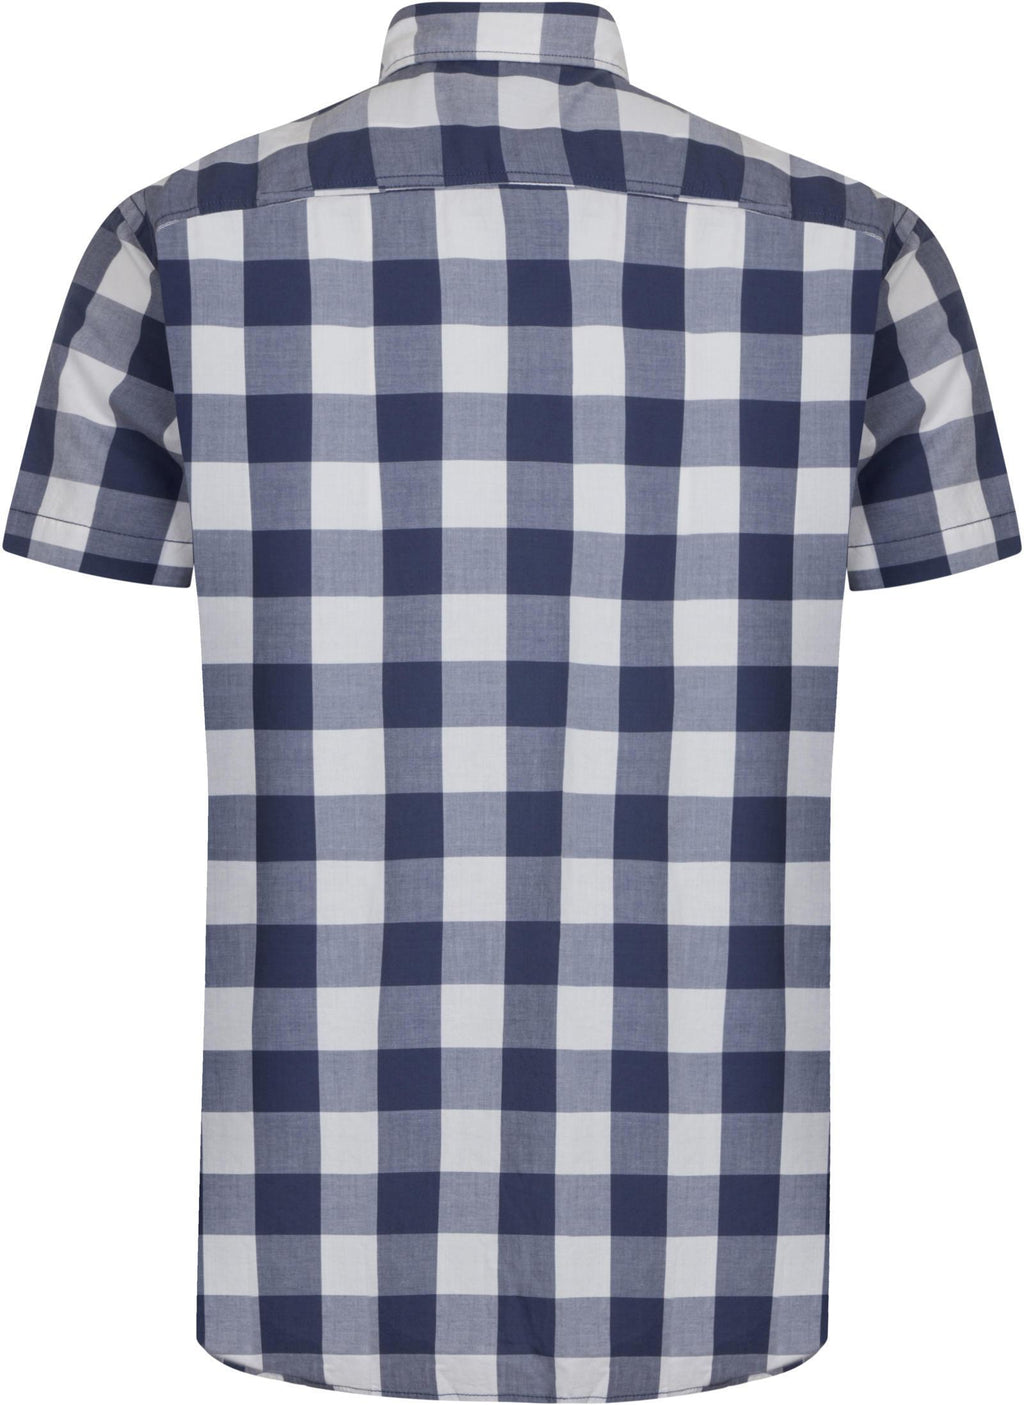 Jack & Jones Boise Slim Fit Short Sleeve Checked Shirt Blue